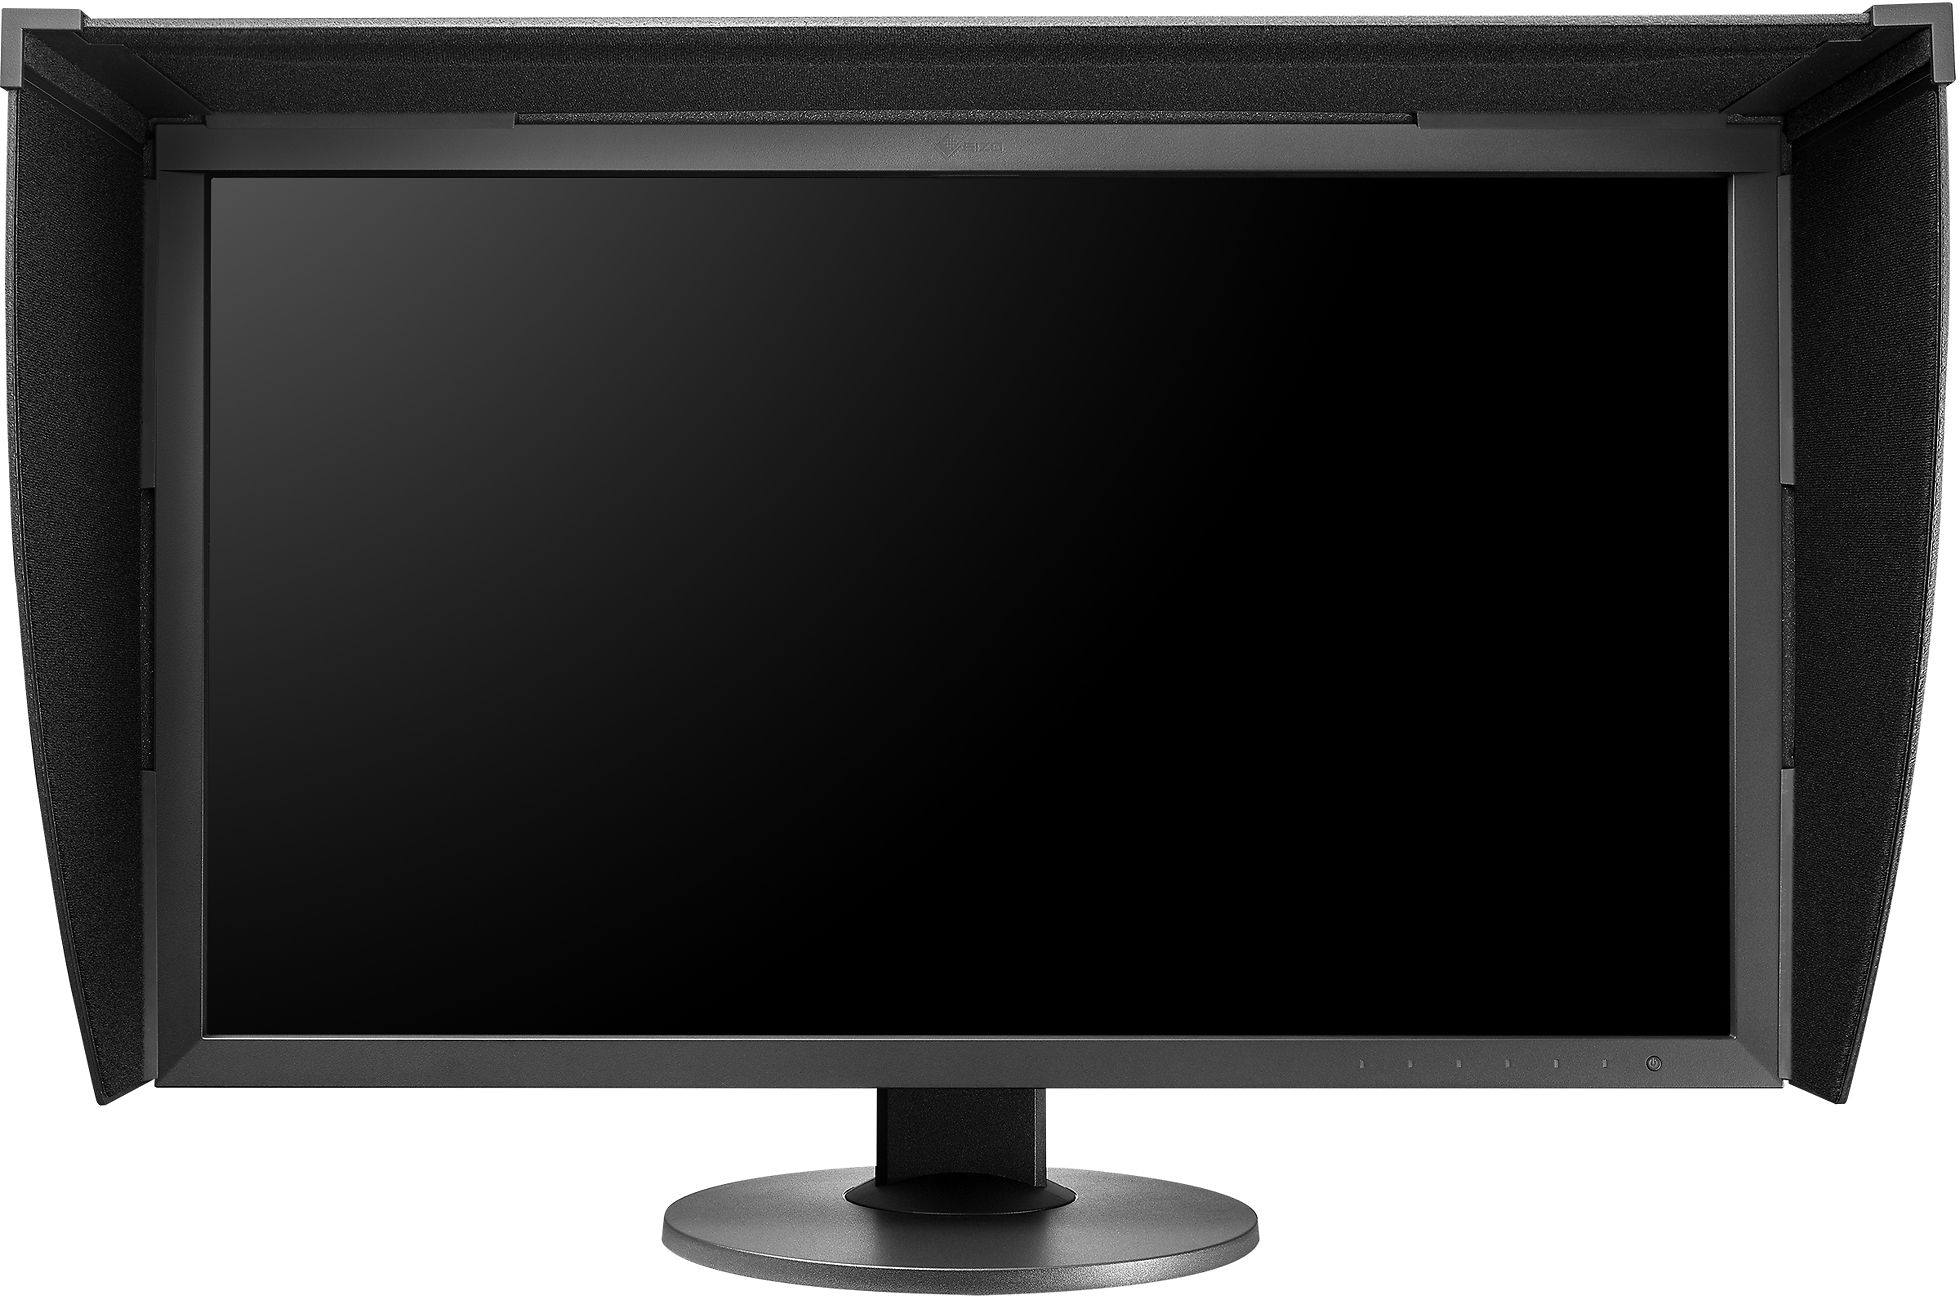 "Eizo ColorEdge CG2730 27"" Monitor Ex-Demo Image"